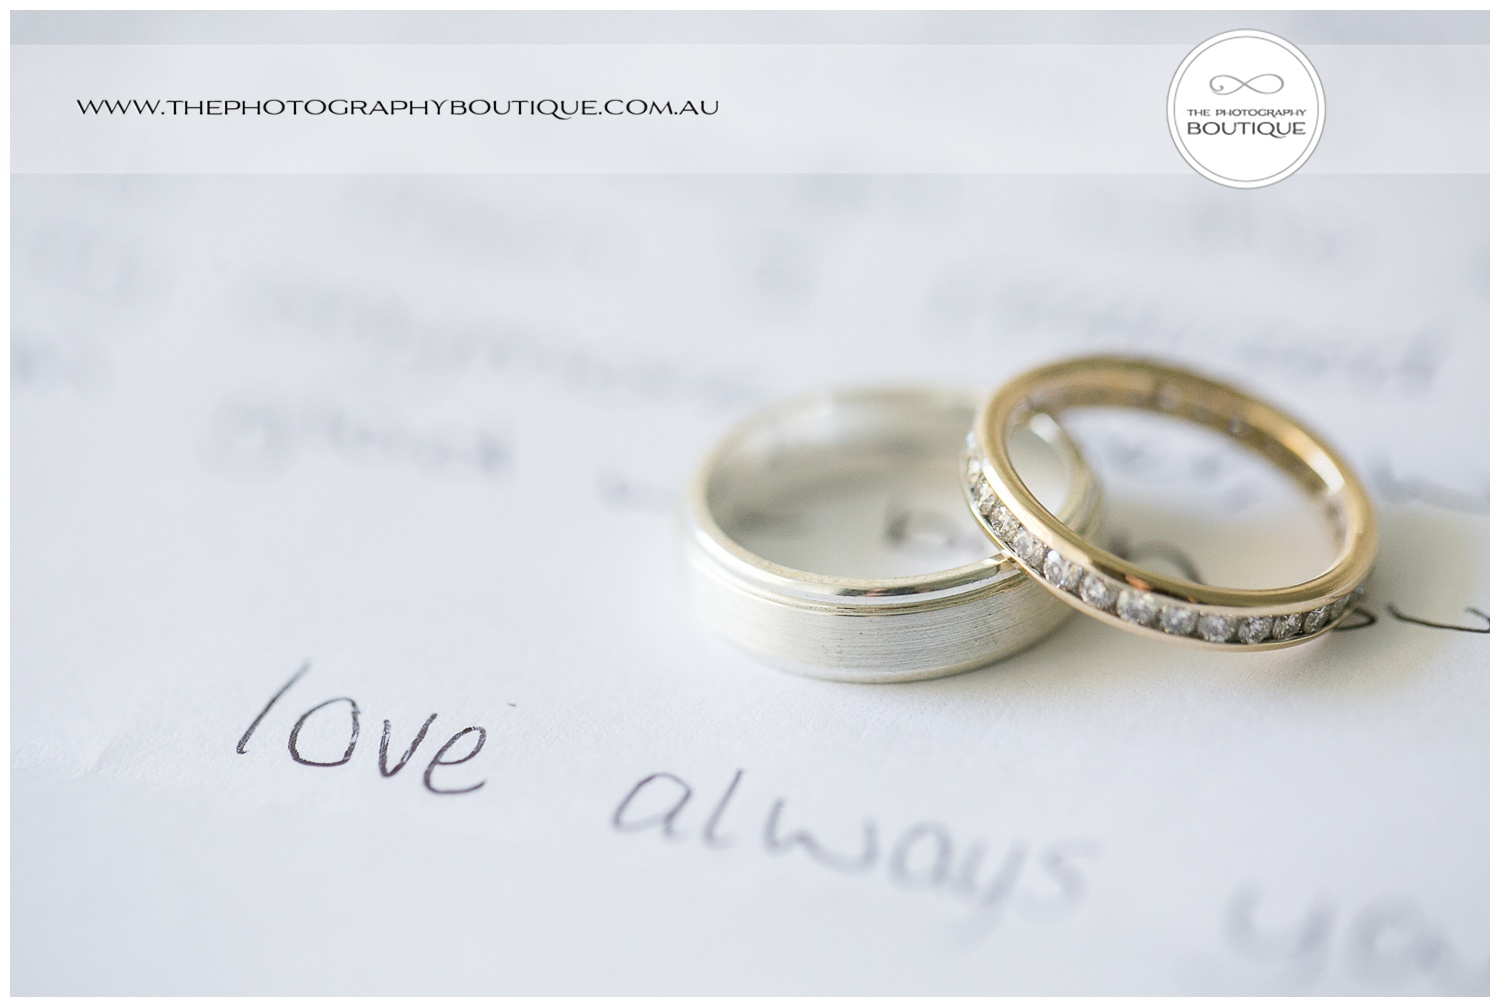 wedding rings on letter from groom to bride